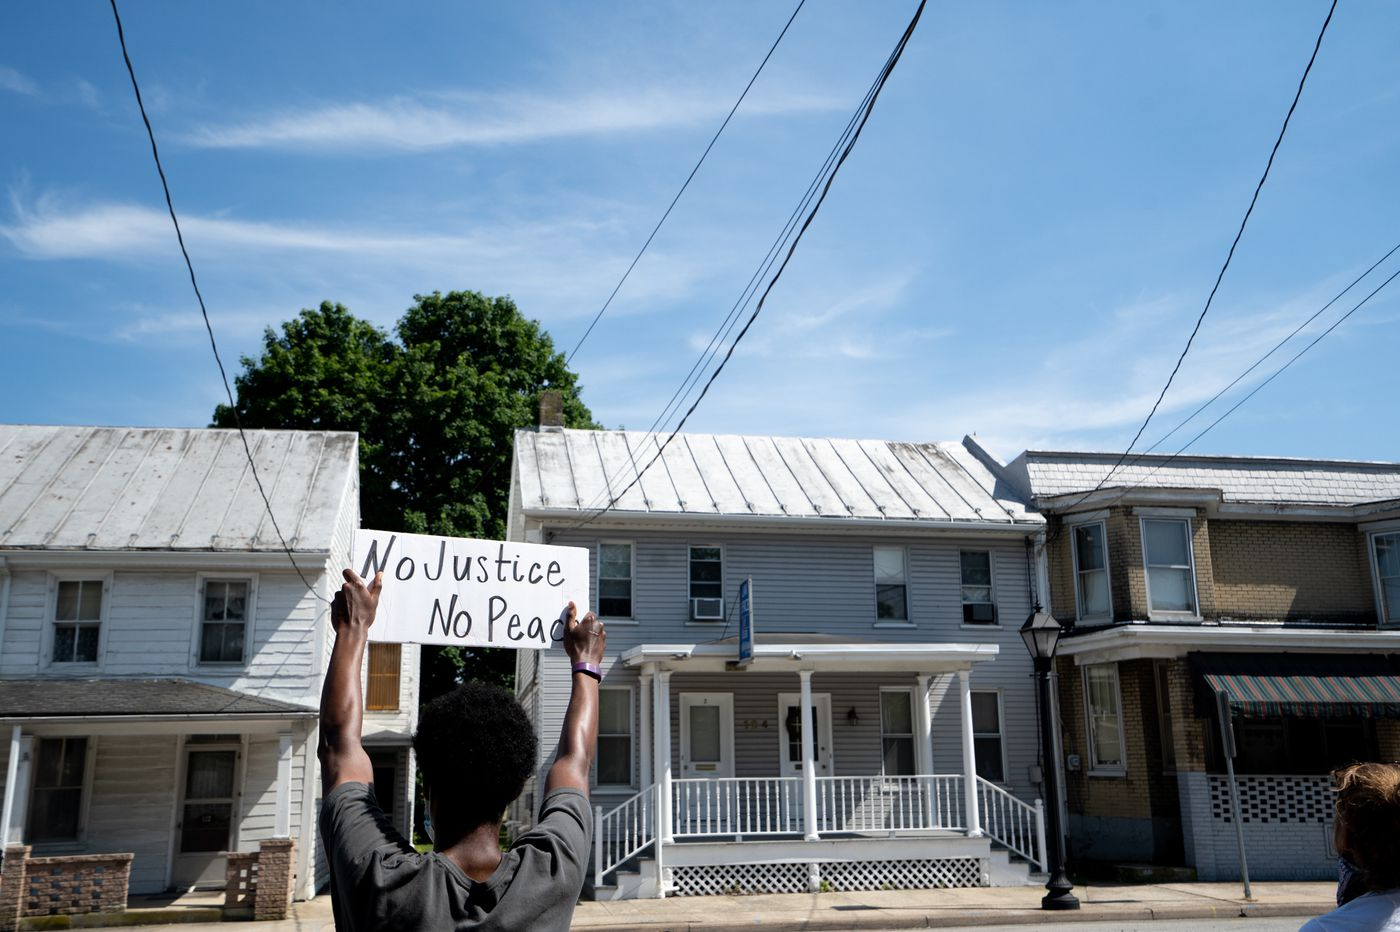 Small-town Pa. protests are a sign of big changes